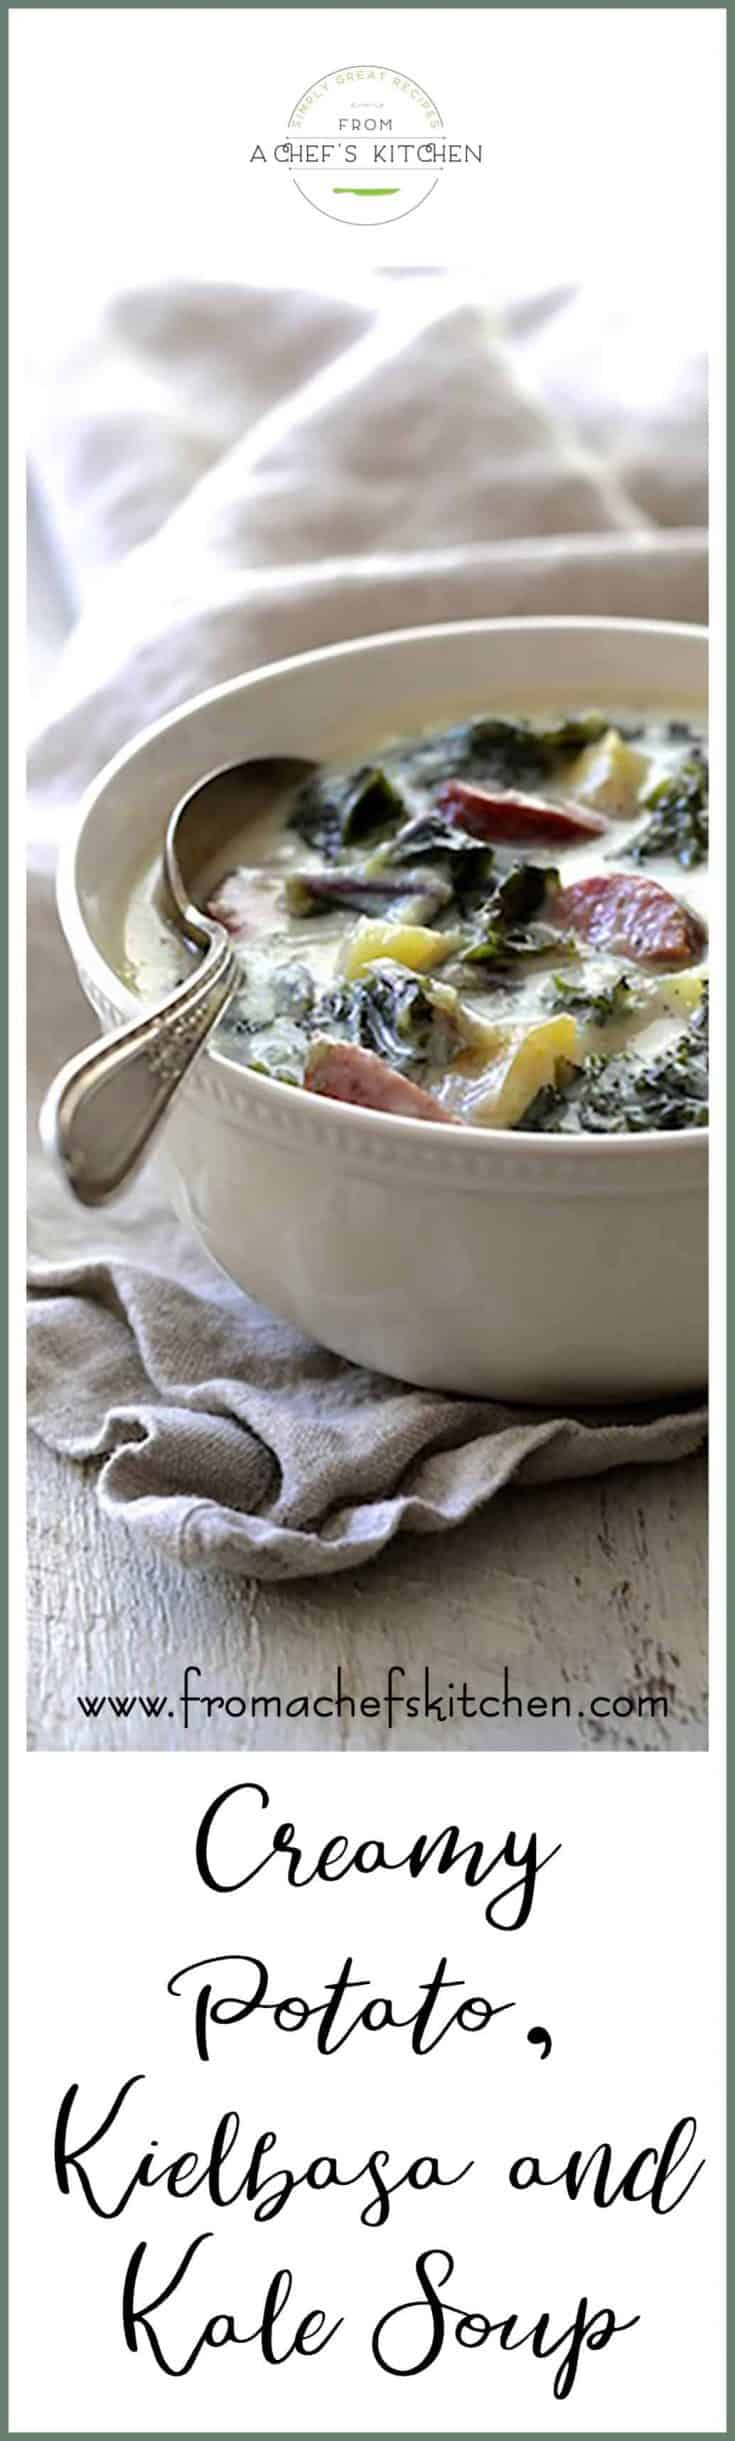 Creamy Potato Kielbasa and Kale Soup is complete comfort in a bowl that's perfect when the weather gets chilly! #potato #potatosoup #kielbasa #kale #soup